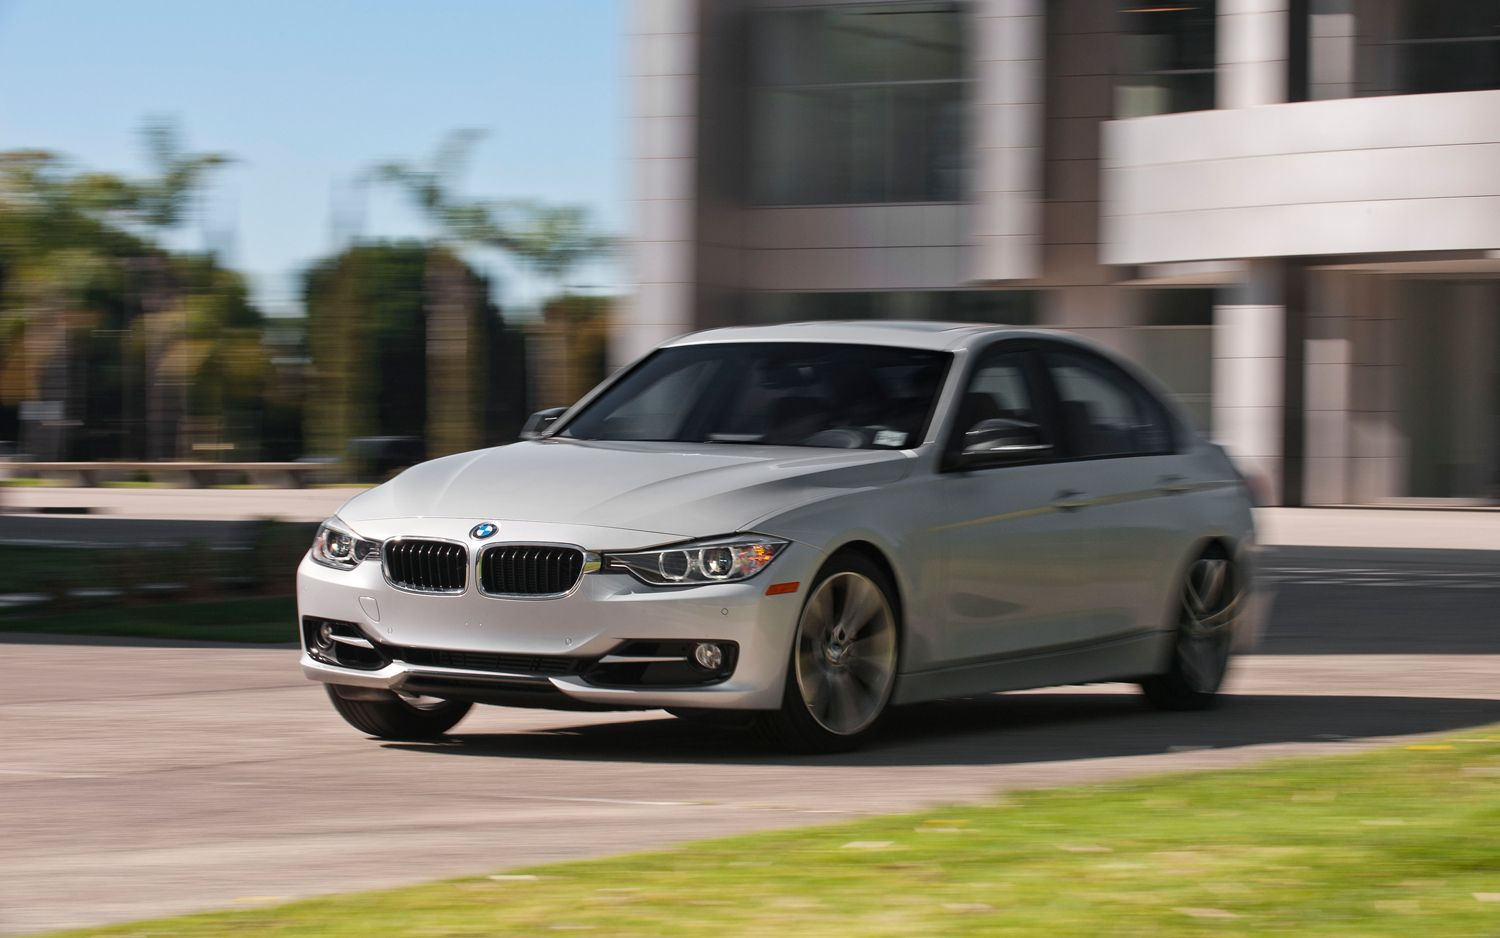 Total Victory The Bmw 328i Is Better Than The Bmw 335i Motortrend